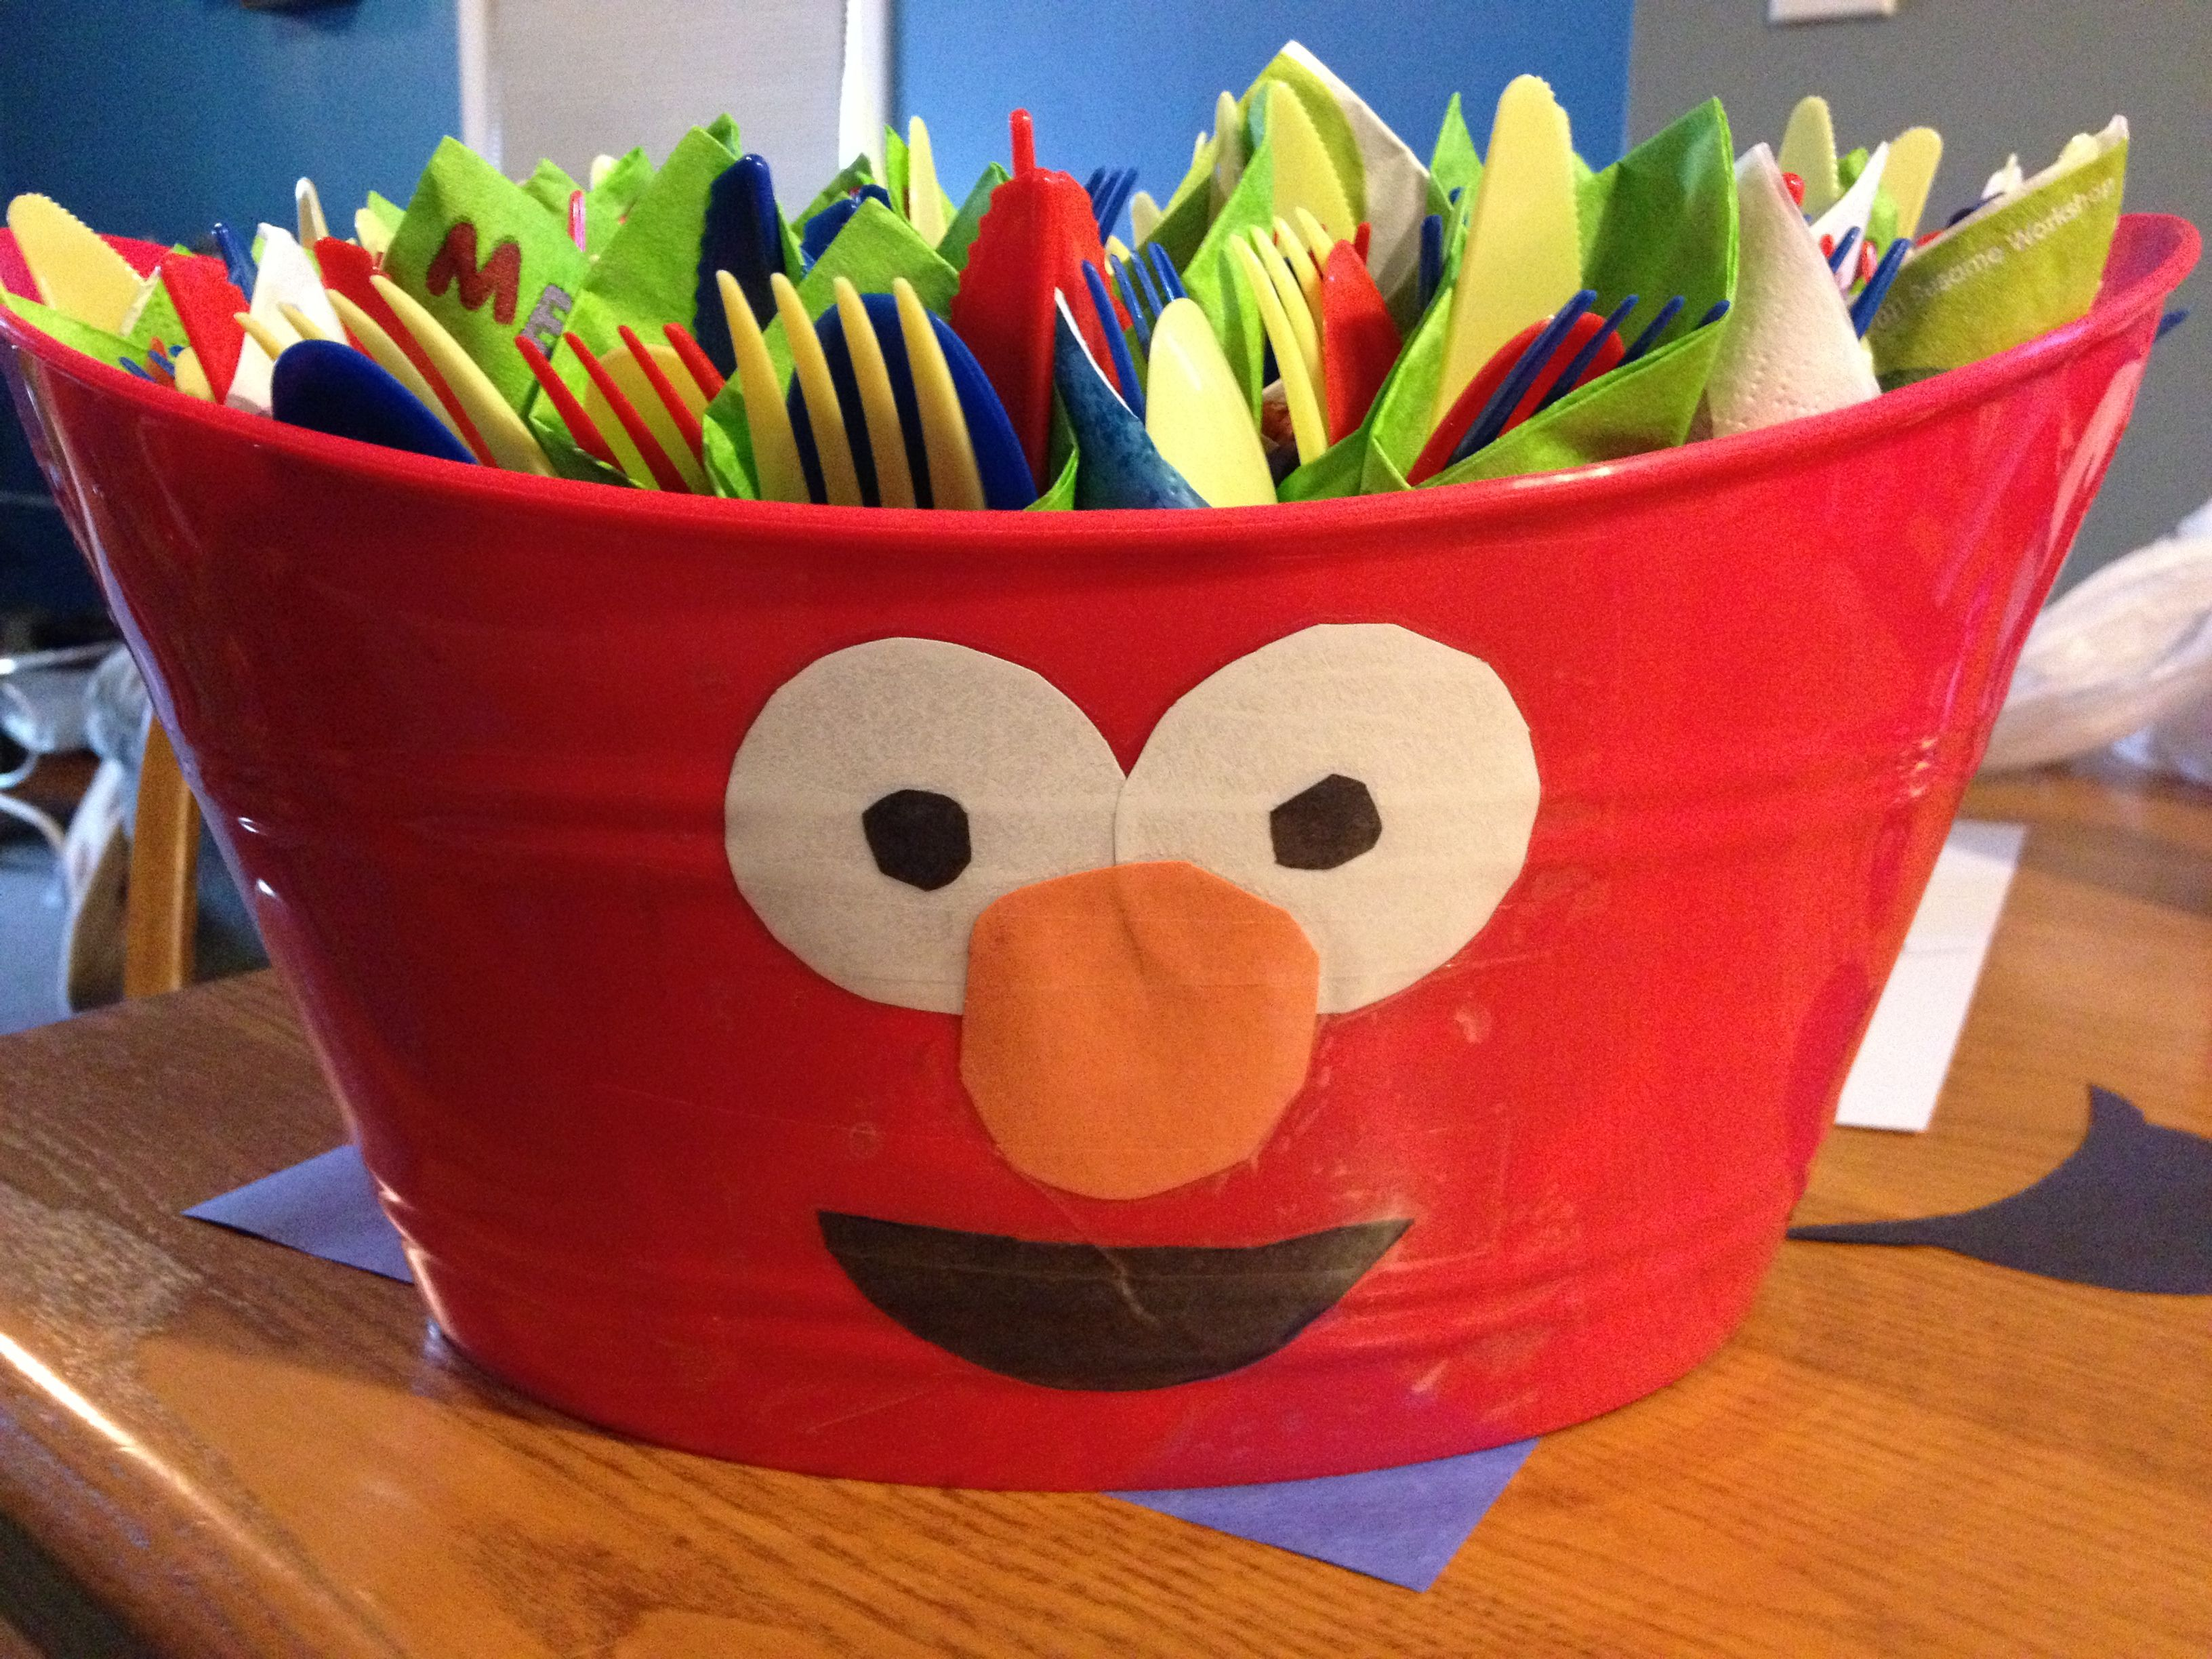 Diy elmo bowls from the dollar tree for sesame street birthday diy elmo bowls from the dollar tree for sesame street birthday solutioingenieria Image collections